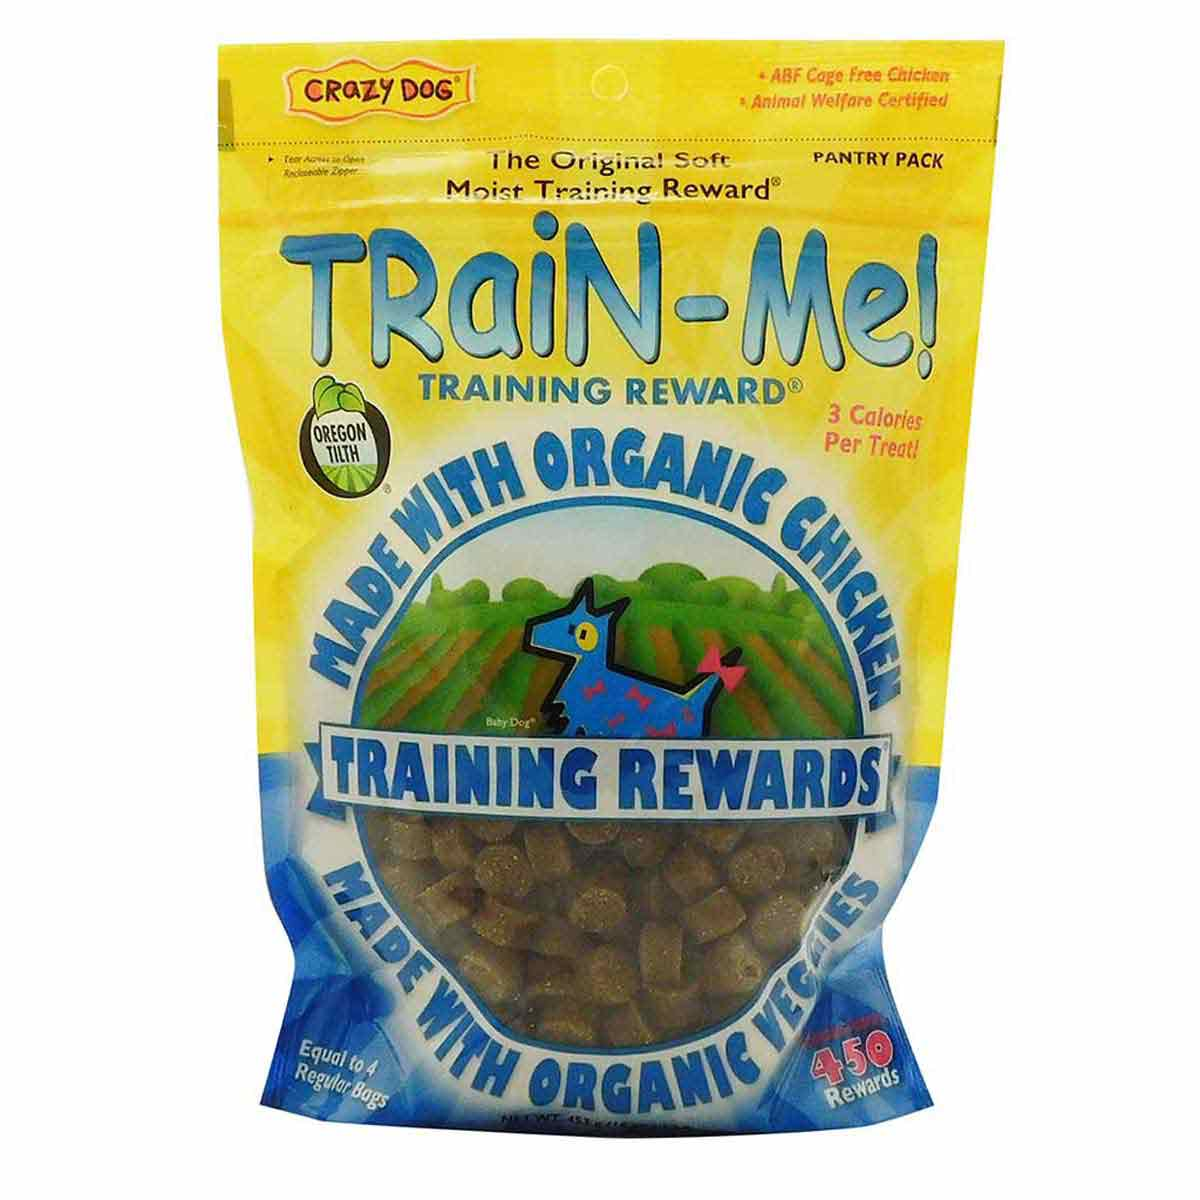 Crazy Dog Organic Train-Me! Treats - Chicken - 1 pound